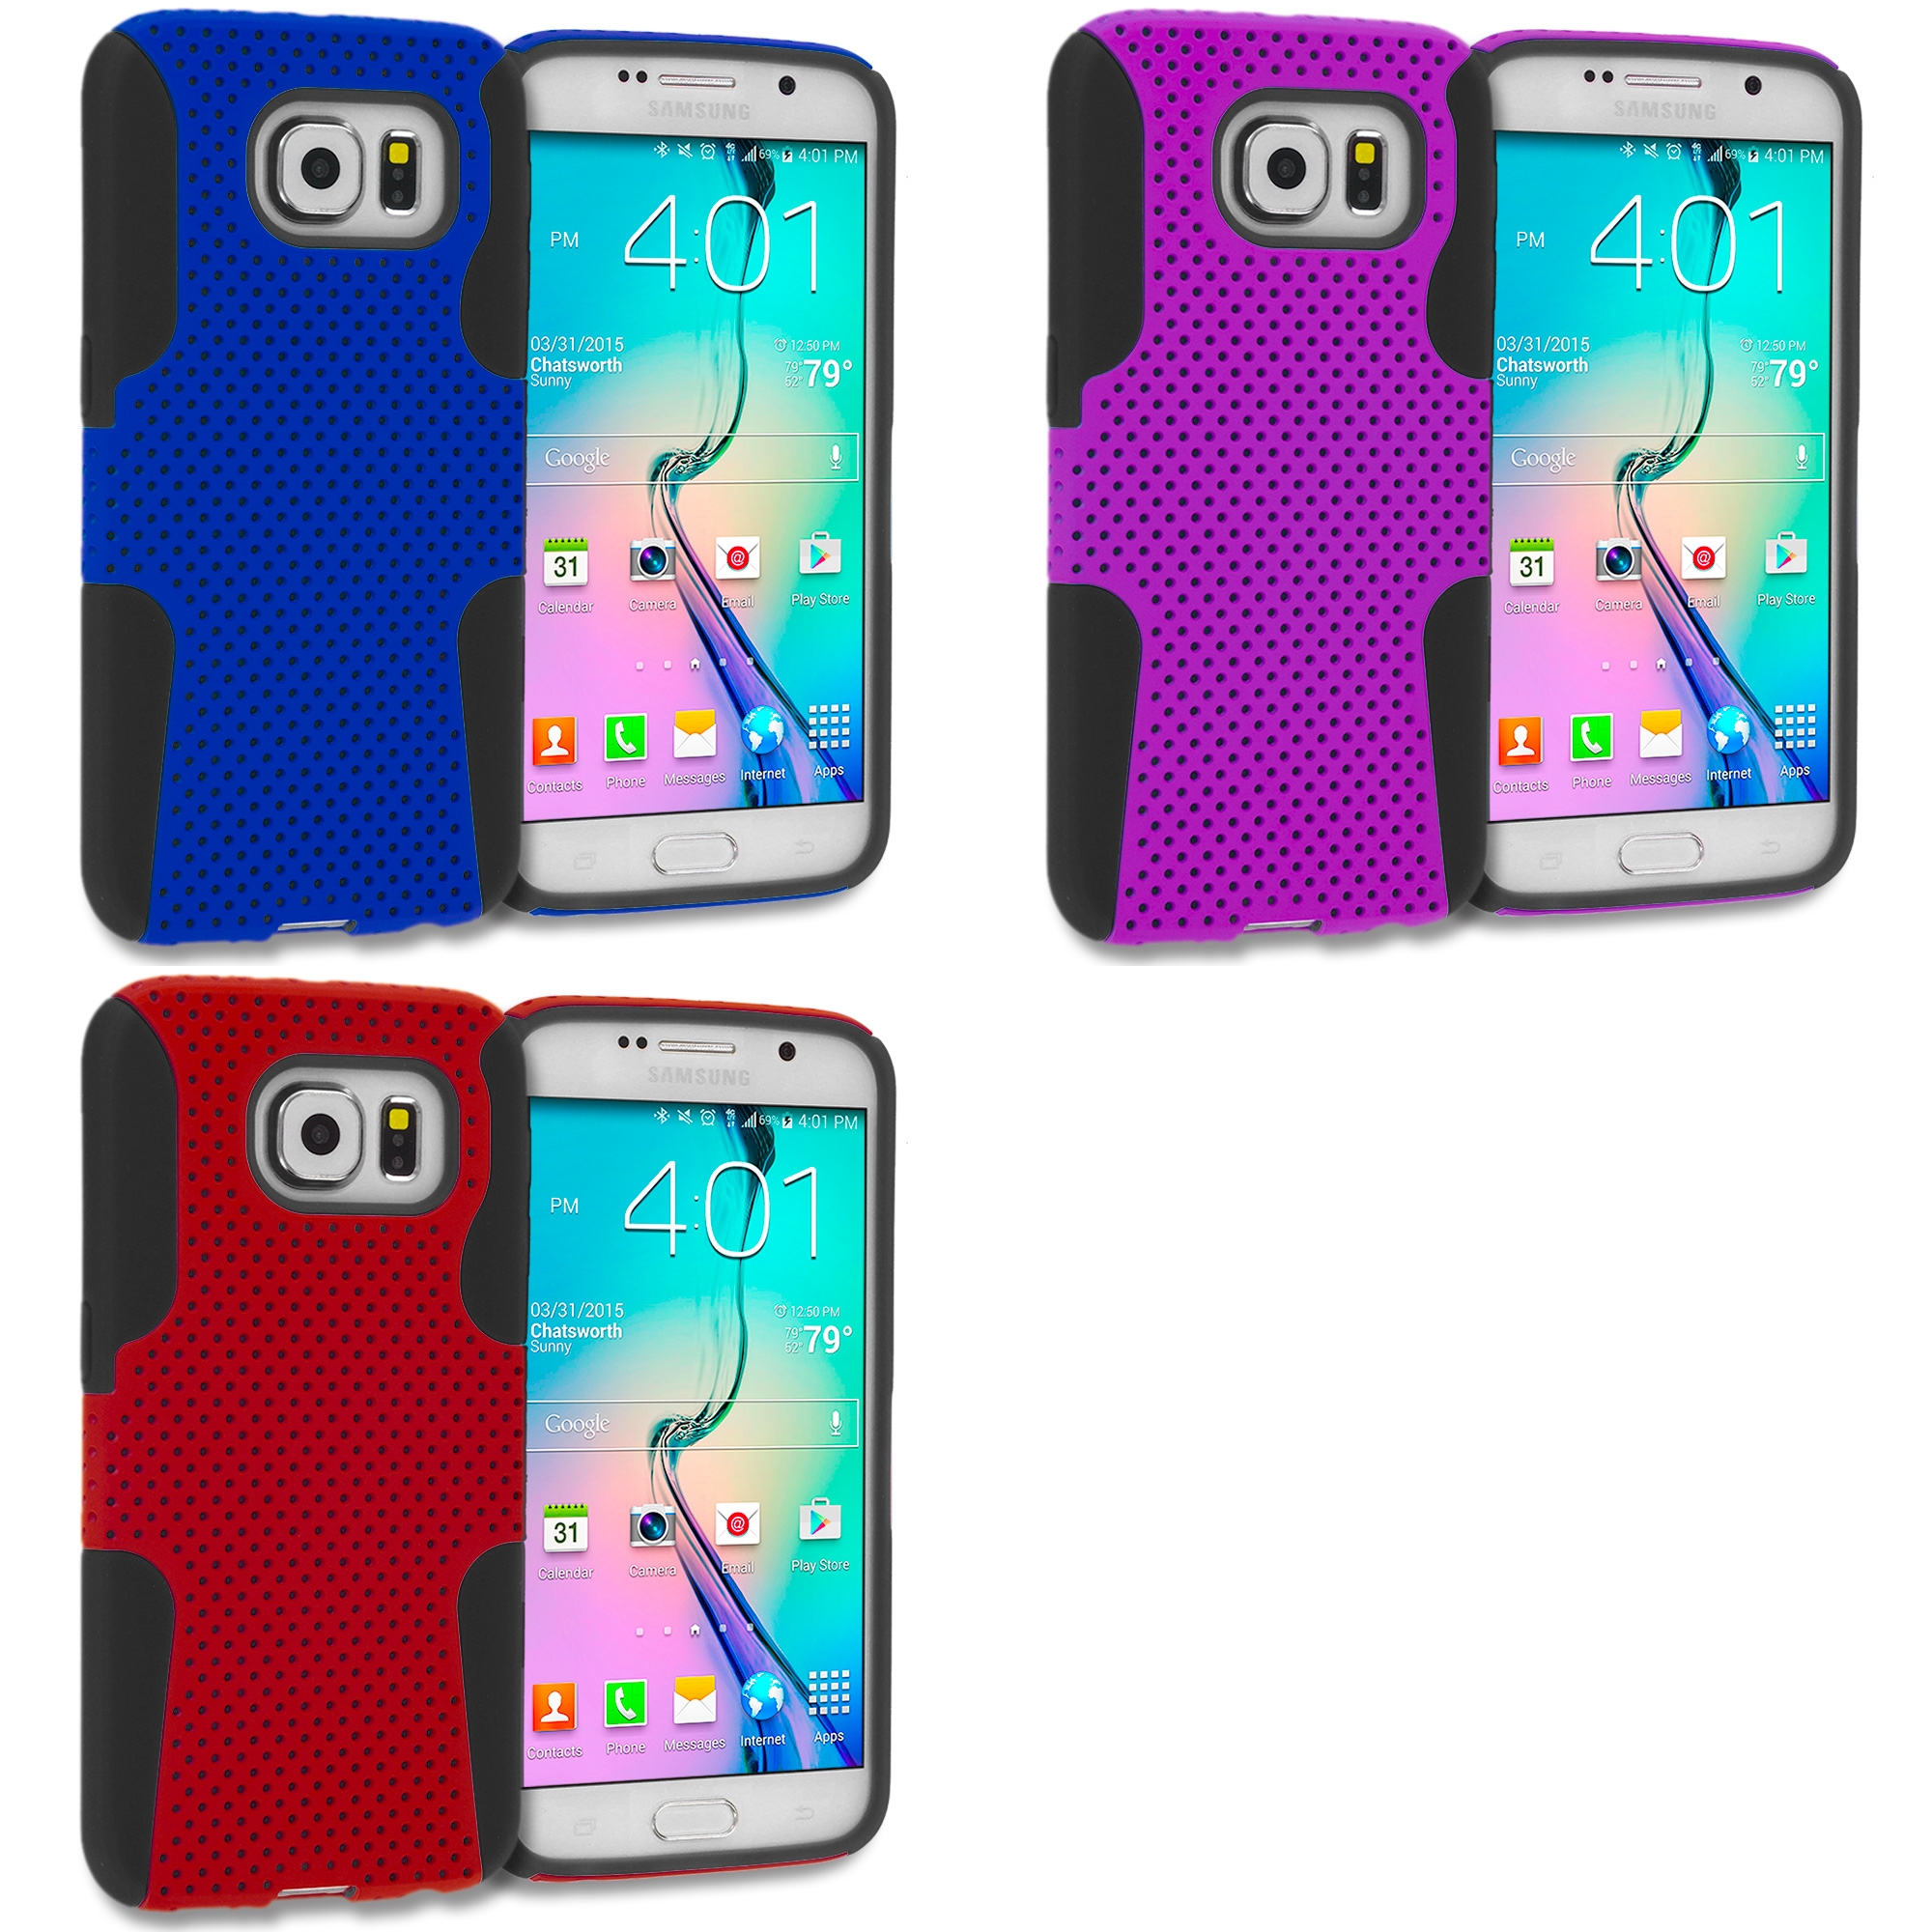 Samsung Galaxy S6 Combo Pack : Black / Blue Hybrid Mesh Hard/Soft Case Cover